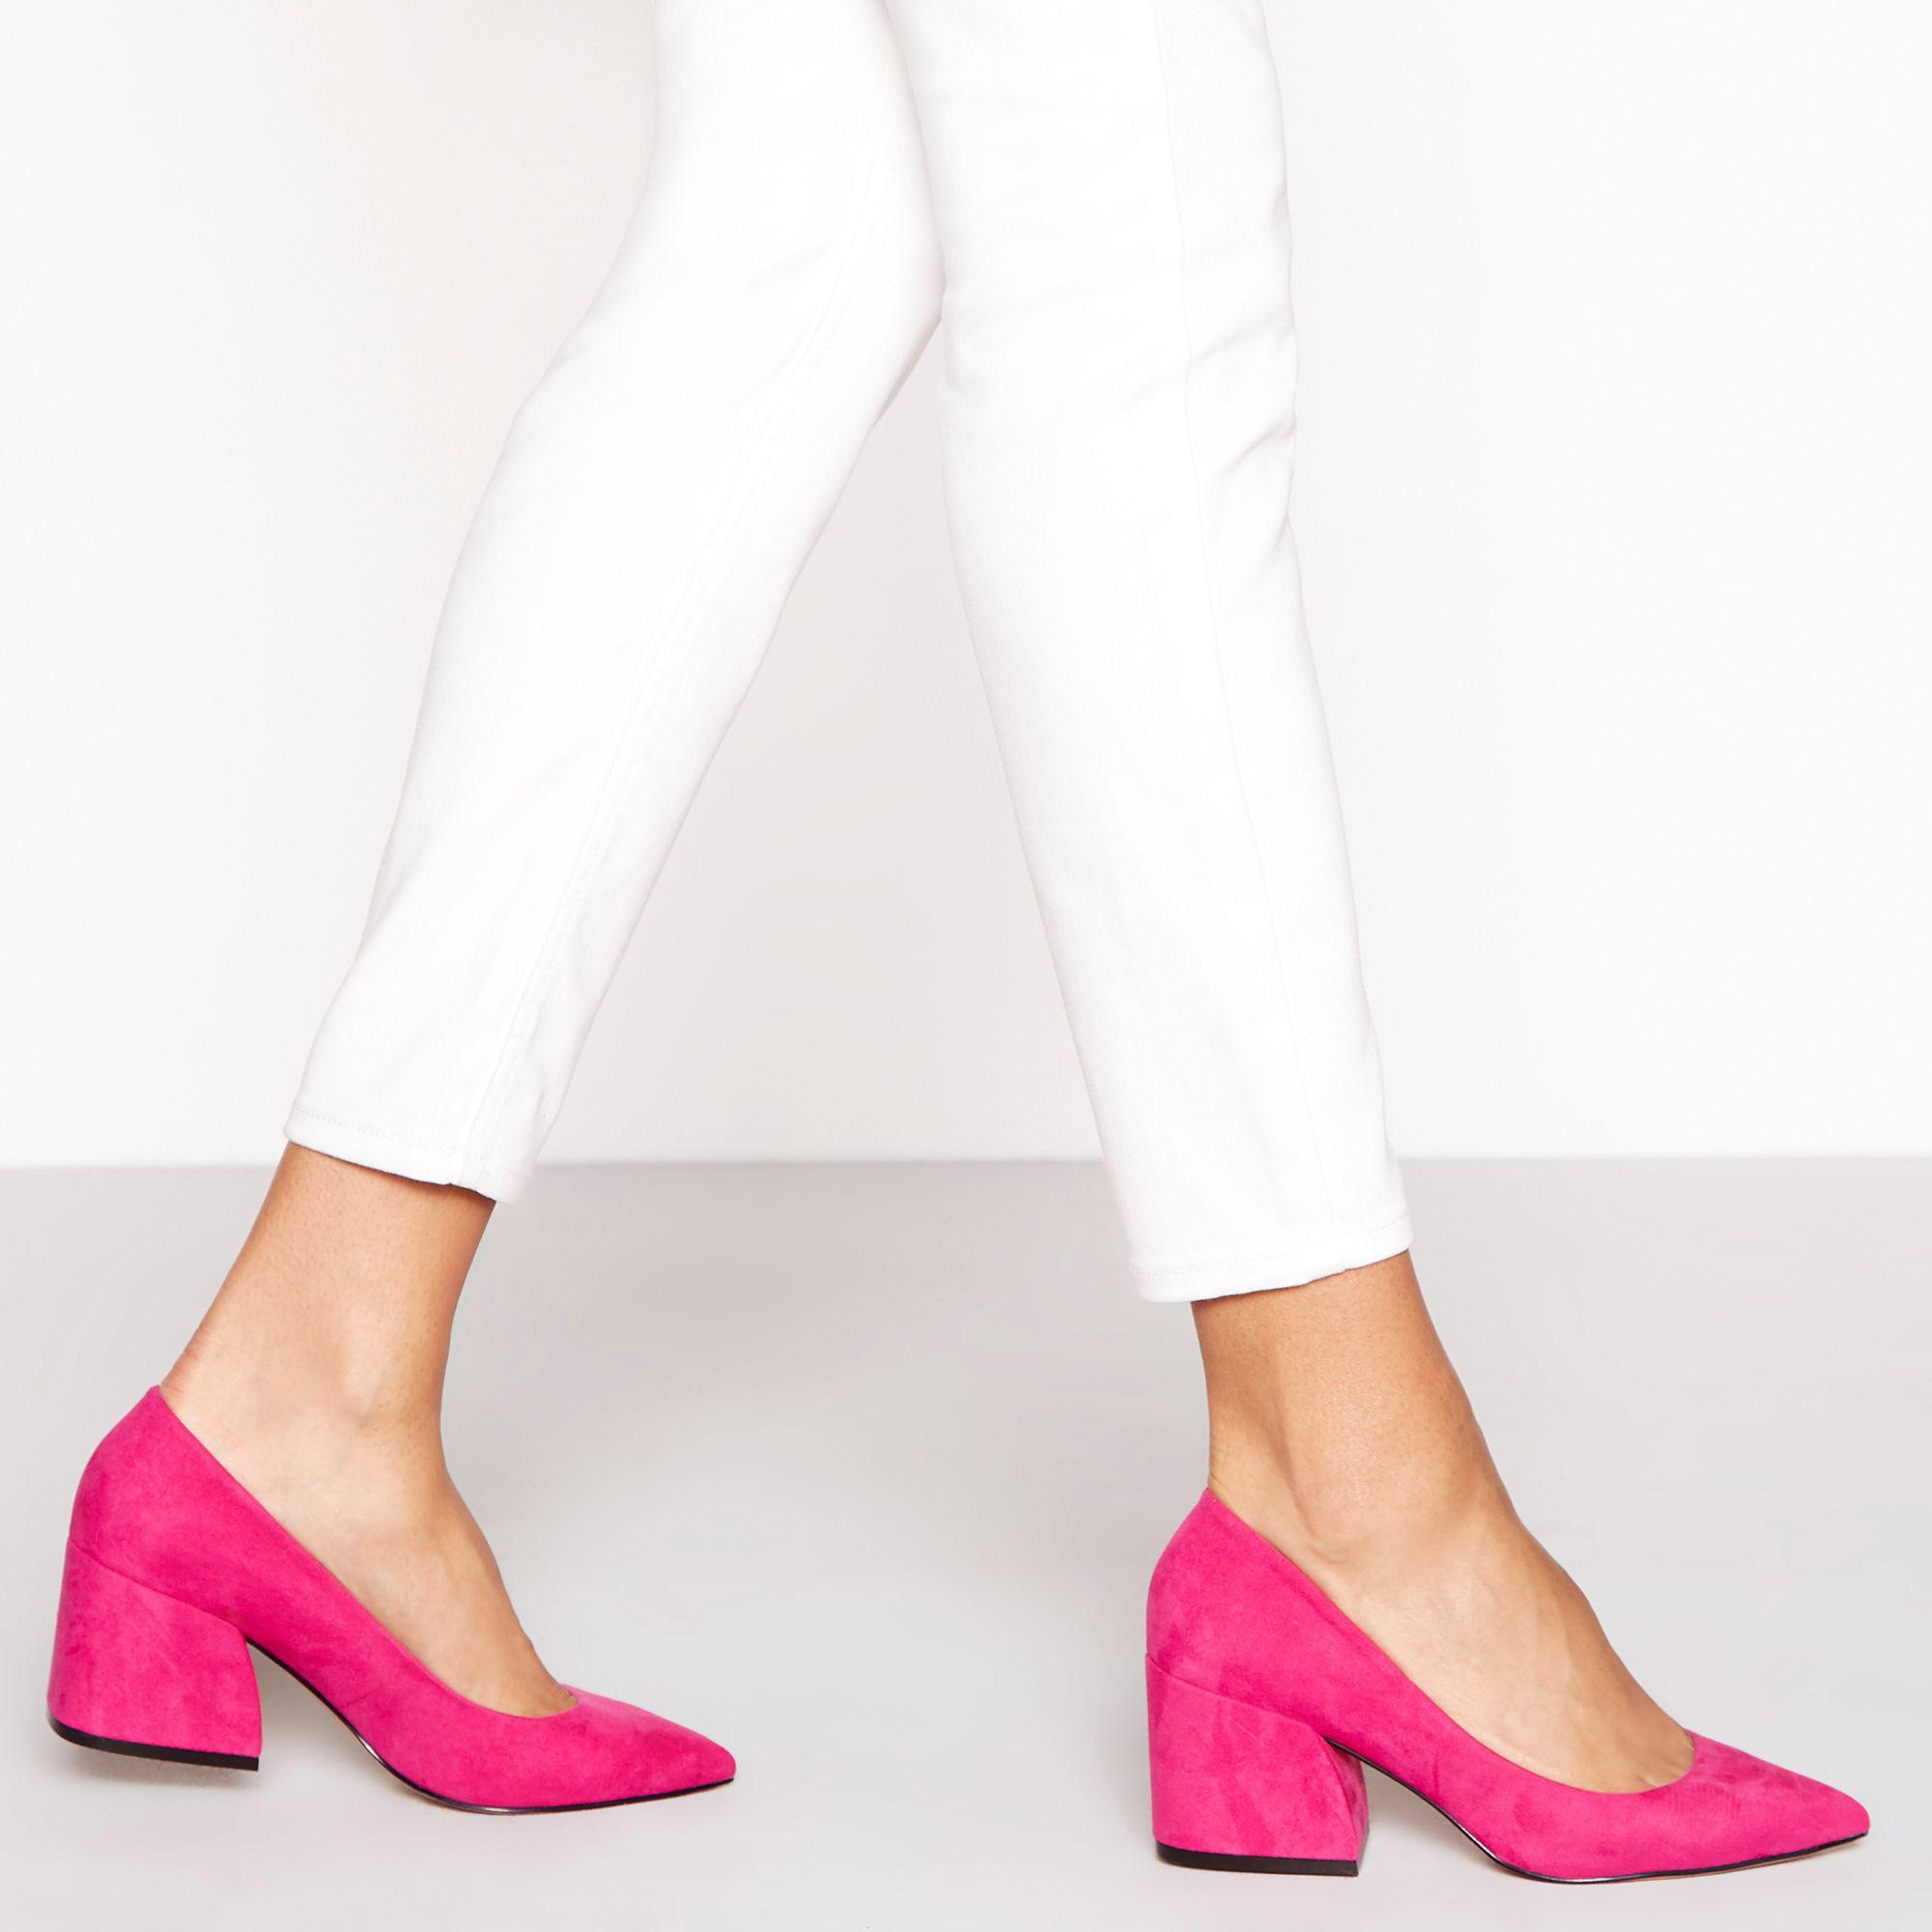 b230ea2f4f Faith Pink Suedette 'chase' Mid Block Heel Court Shoes in Pink - Lyst